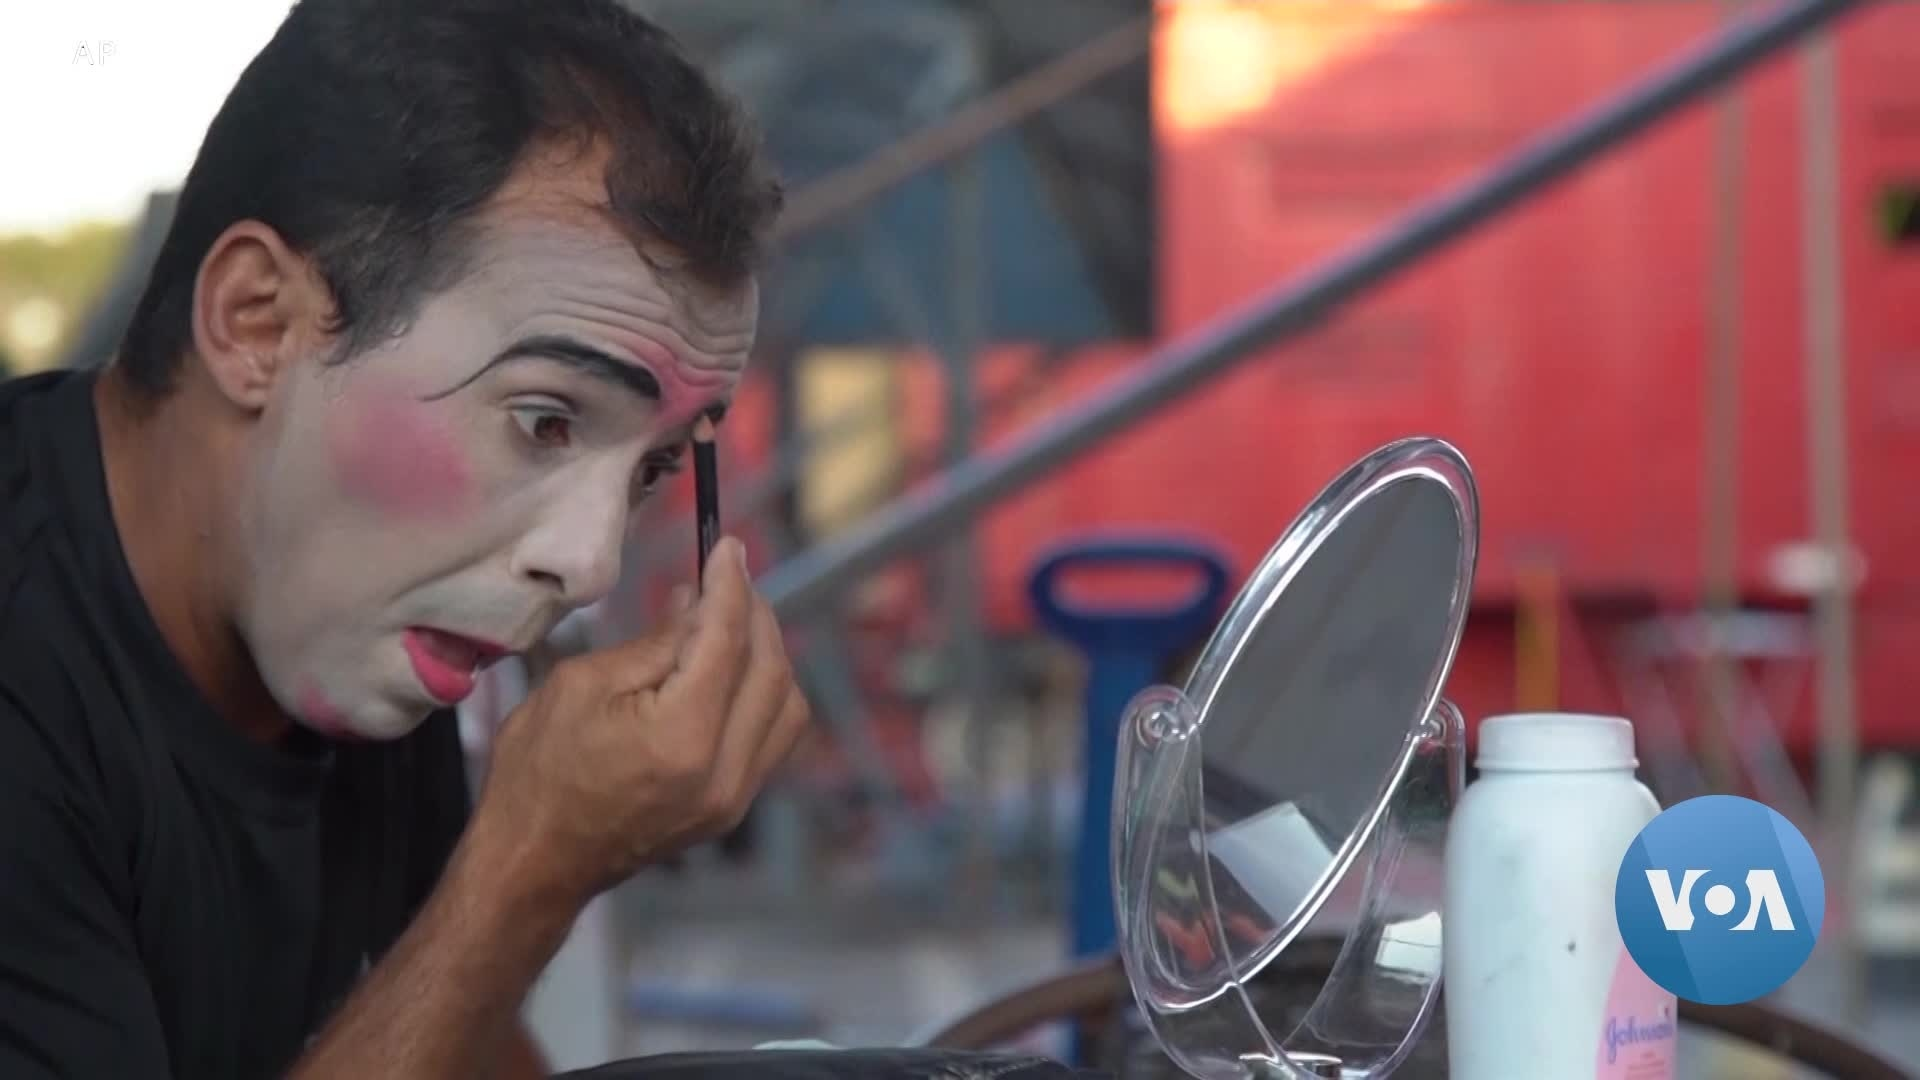 Despite Virus, Brazilian Circus Performers Safely Take Stage